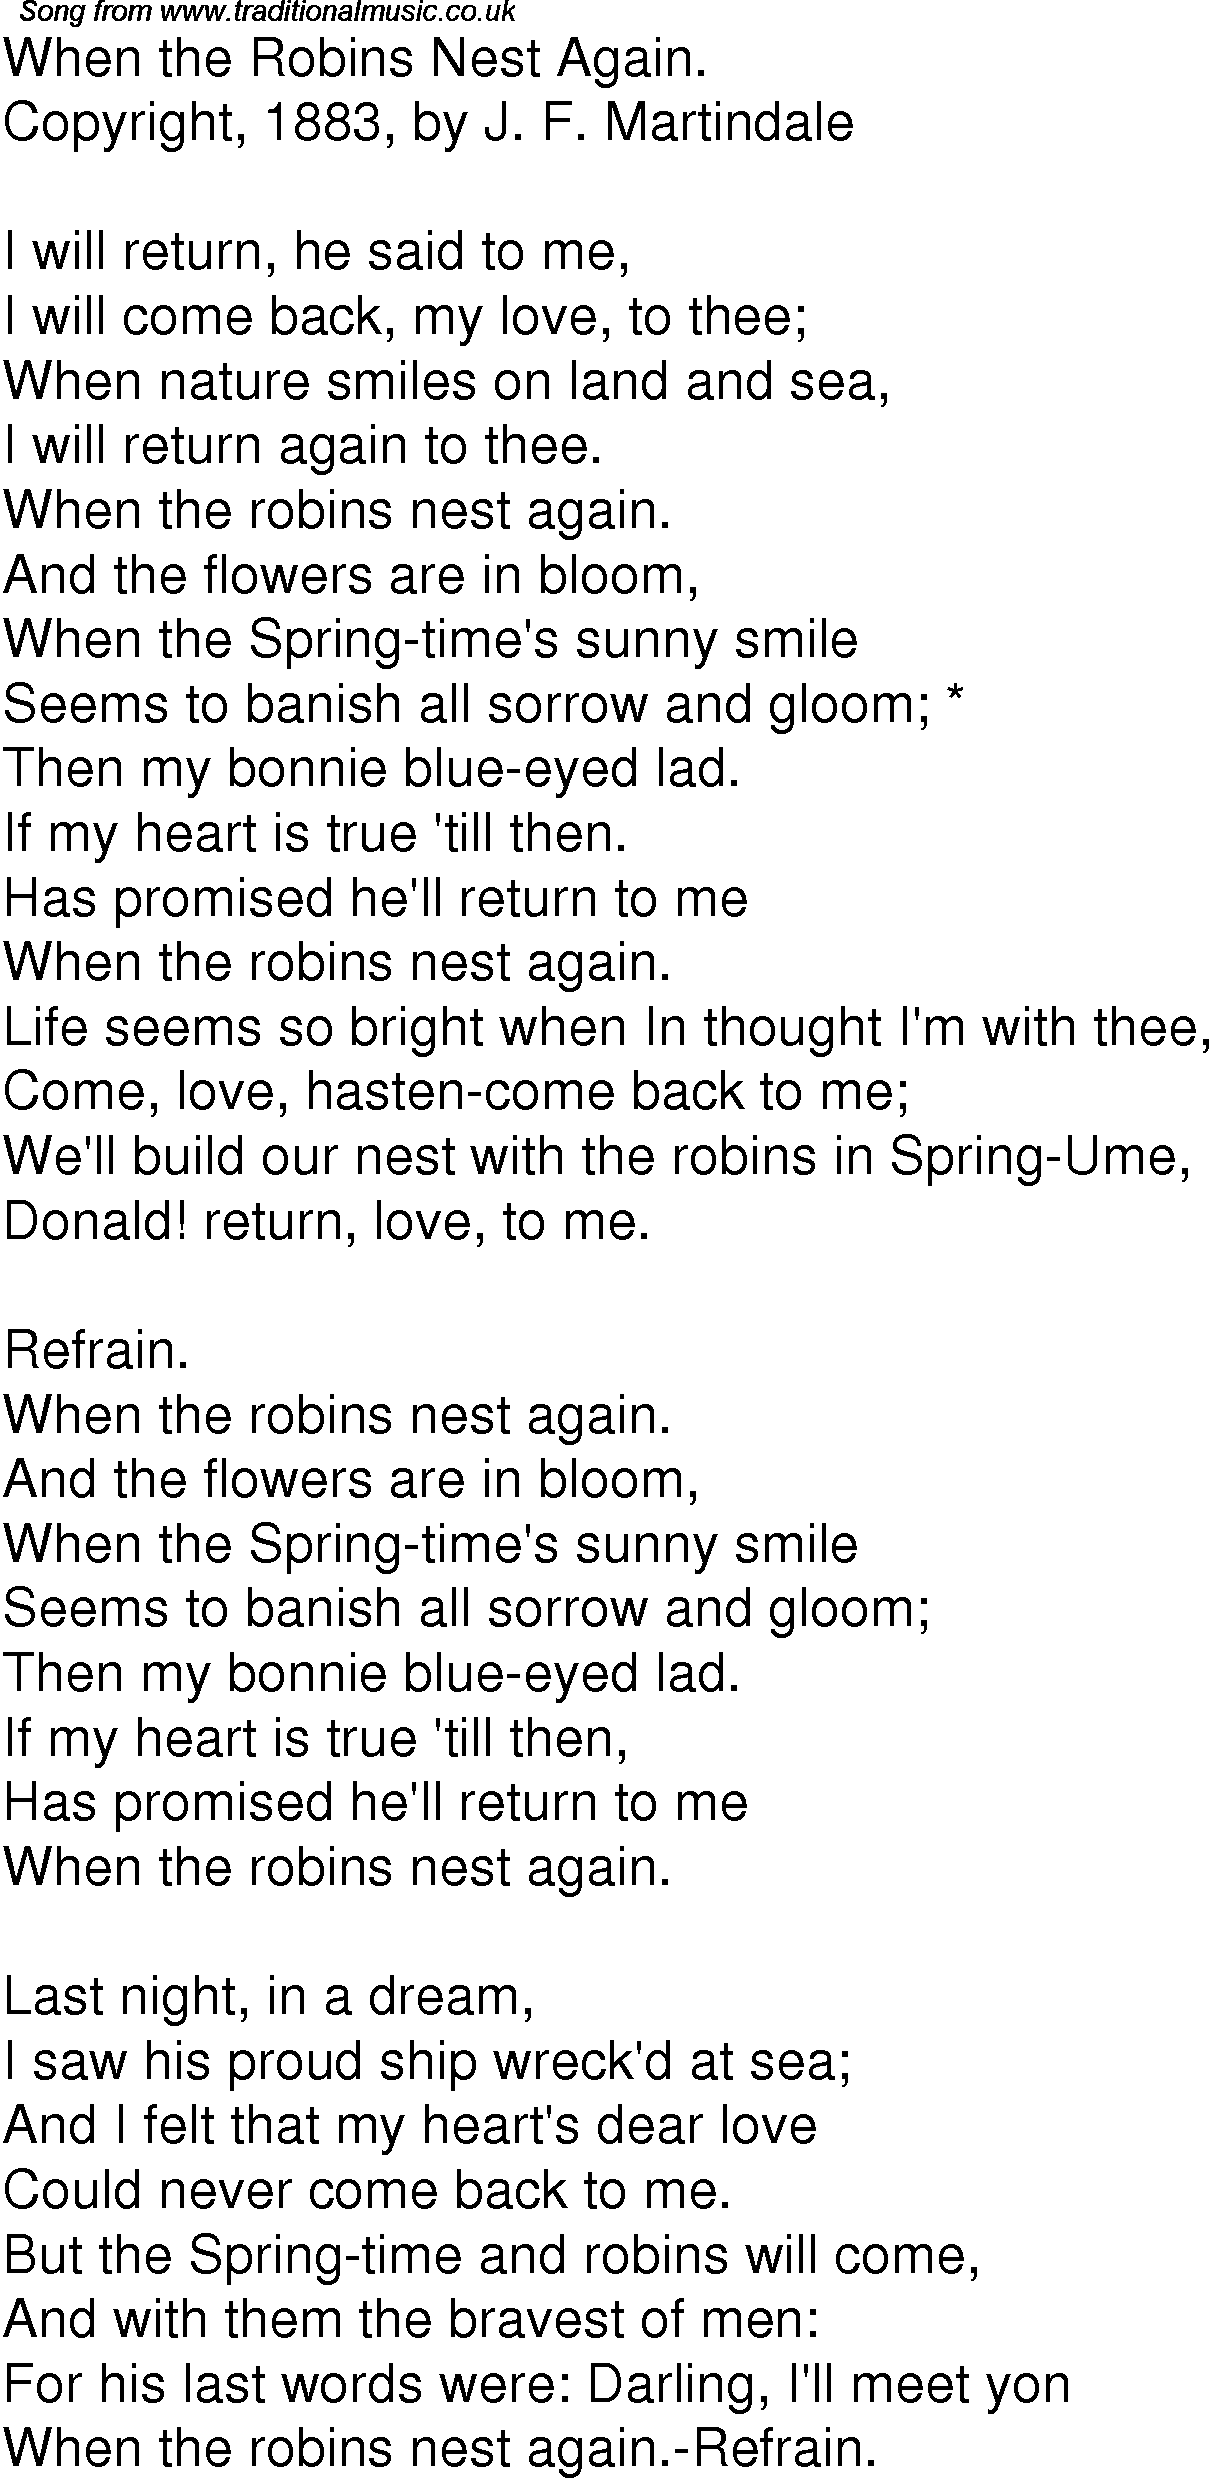 Old Time Song Lyrics For 05 When The Robins Nest Again